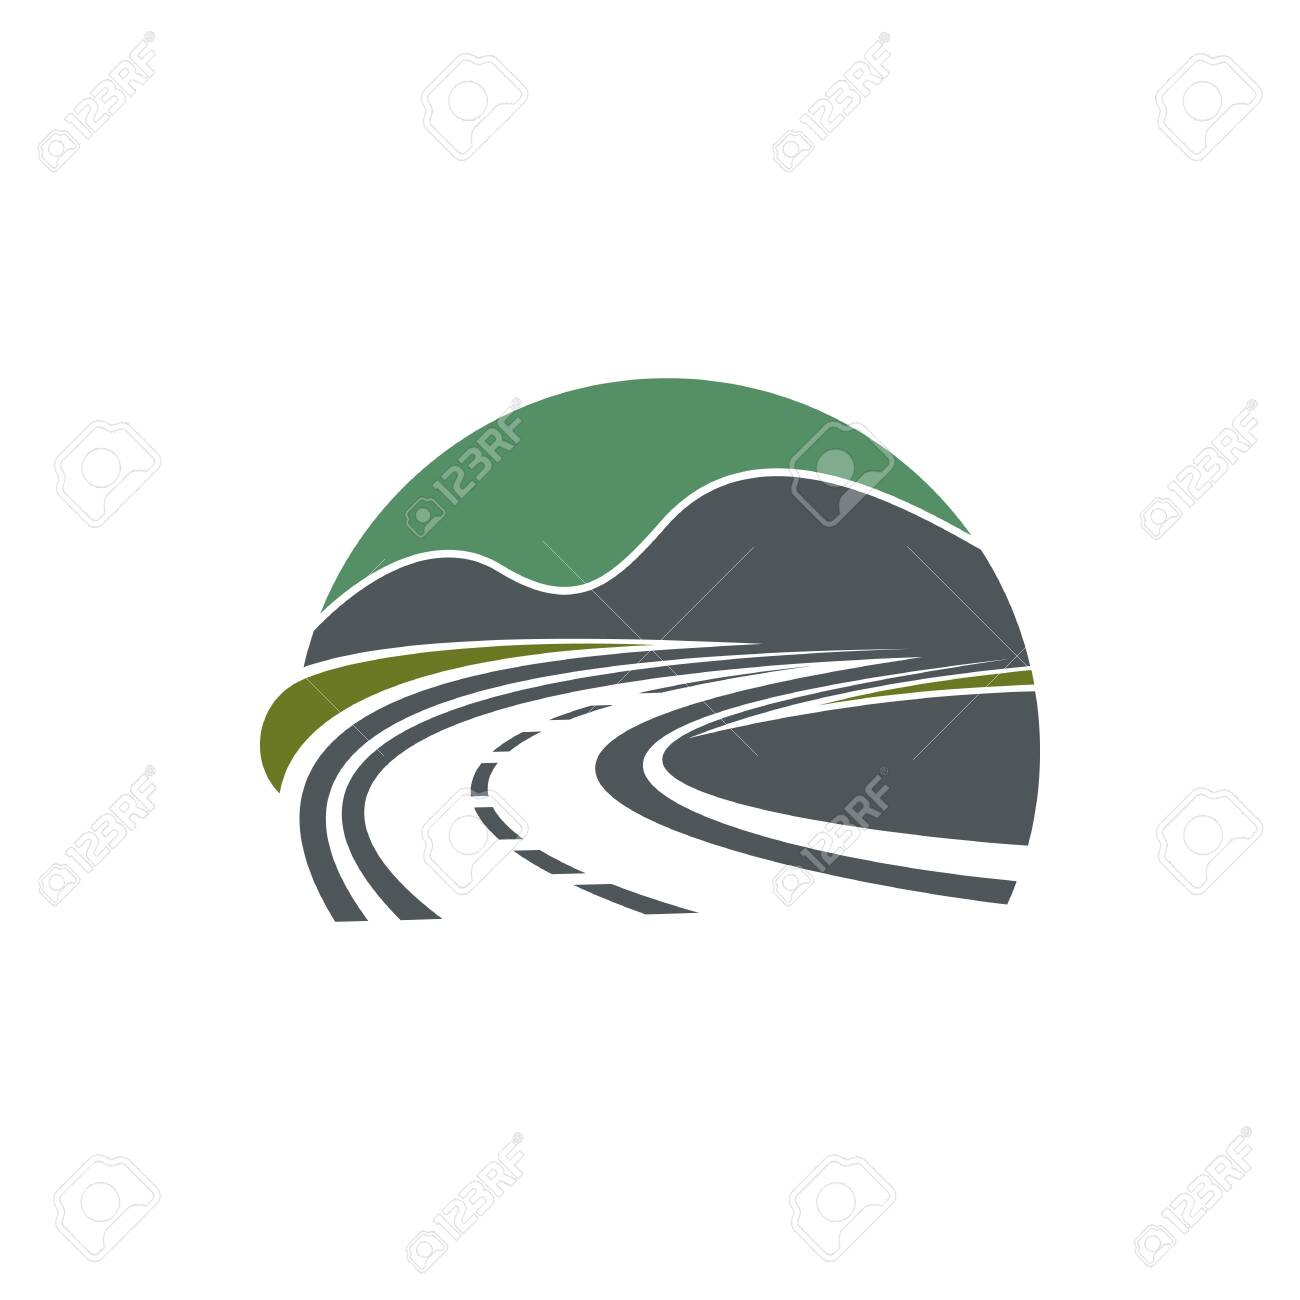 Road isolated roadway or highway symbol. Vector travel company logo, path in nature landscape - 144398091